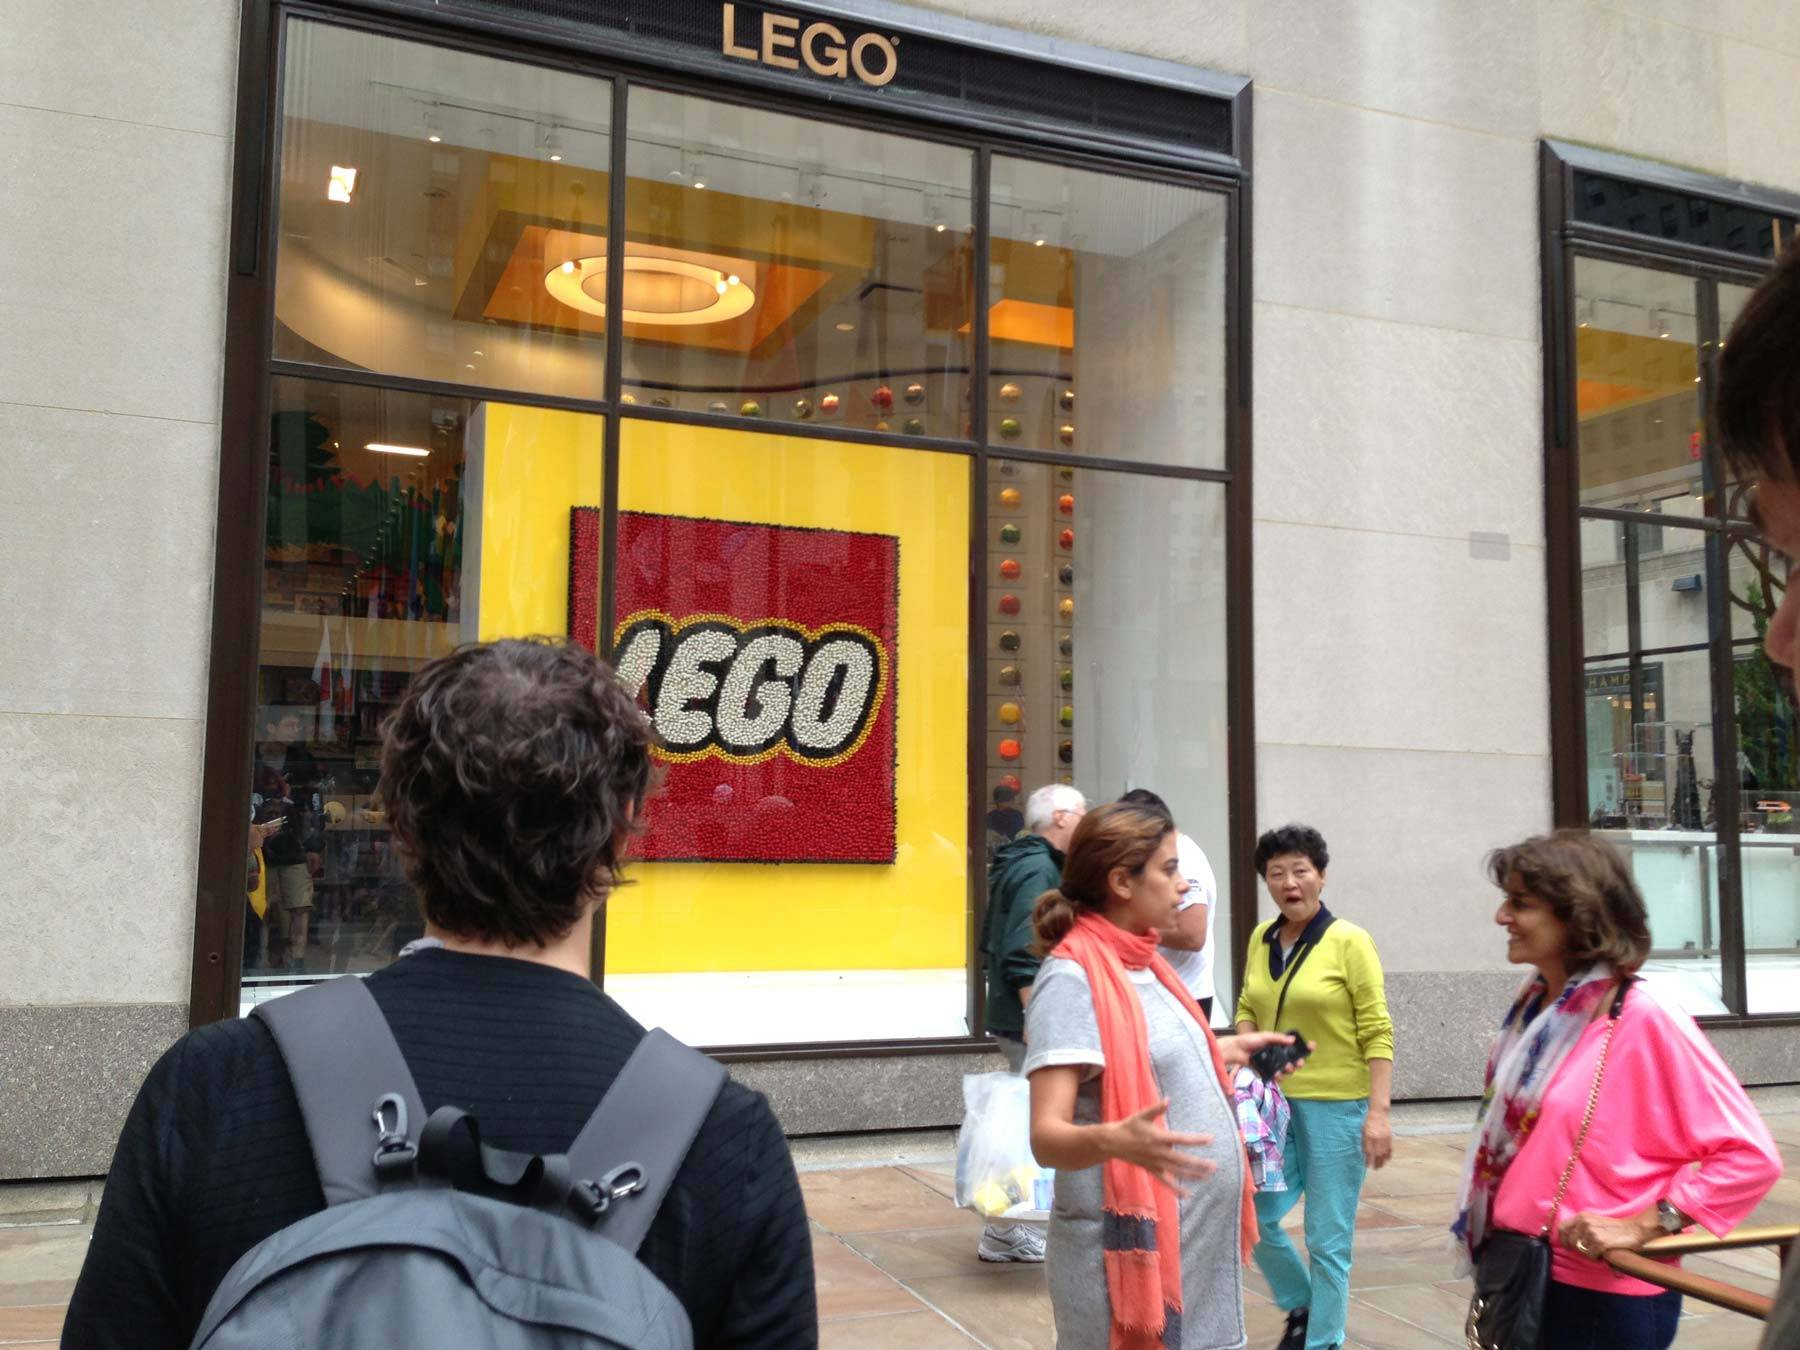 Richard approaching the LEGO store